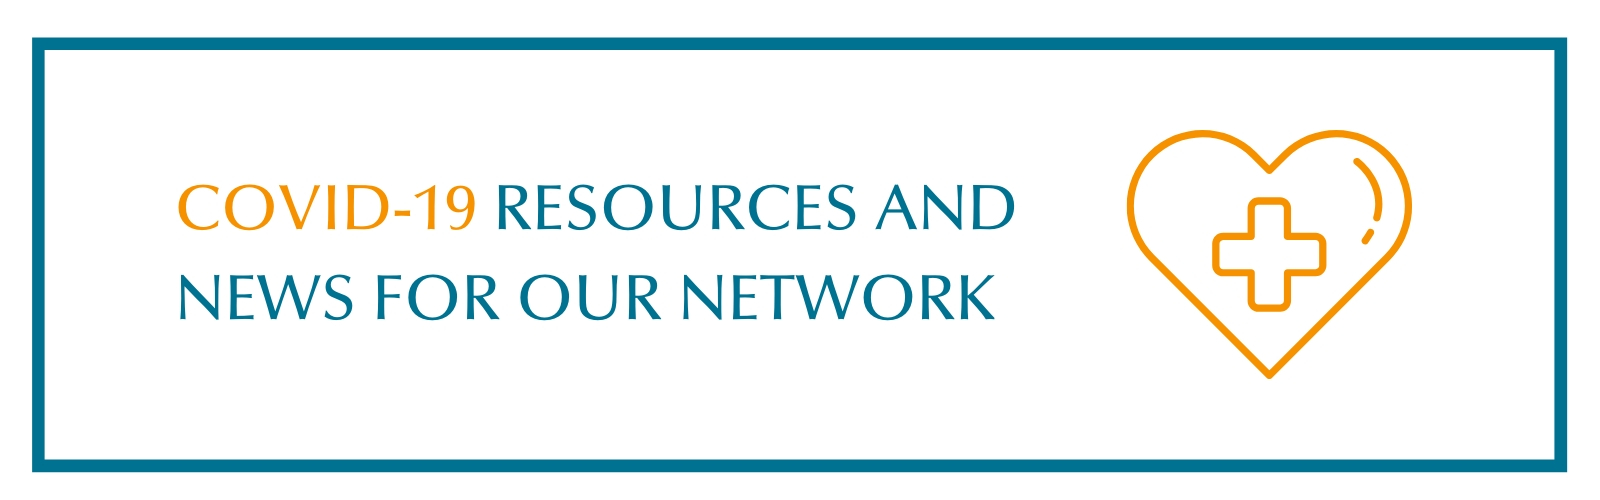 Covid-19 Resources & News for our Network